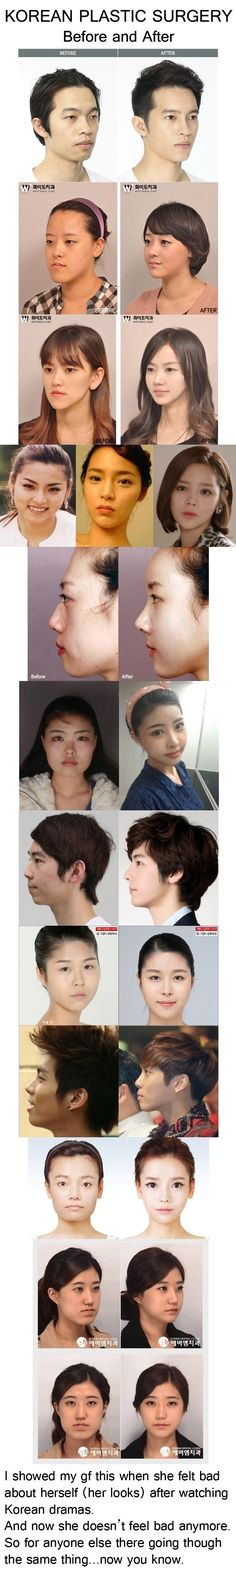 Korean plastic surgery  - funny pictures #funnypictures